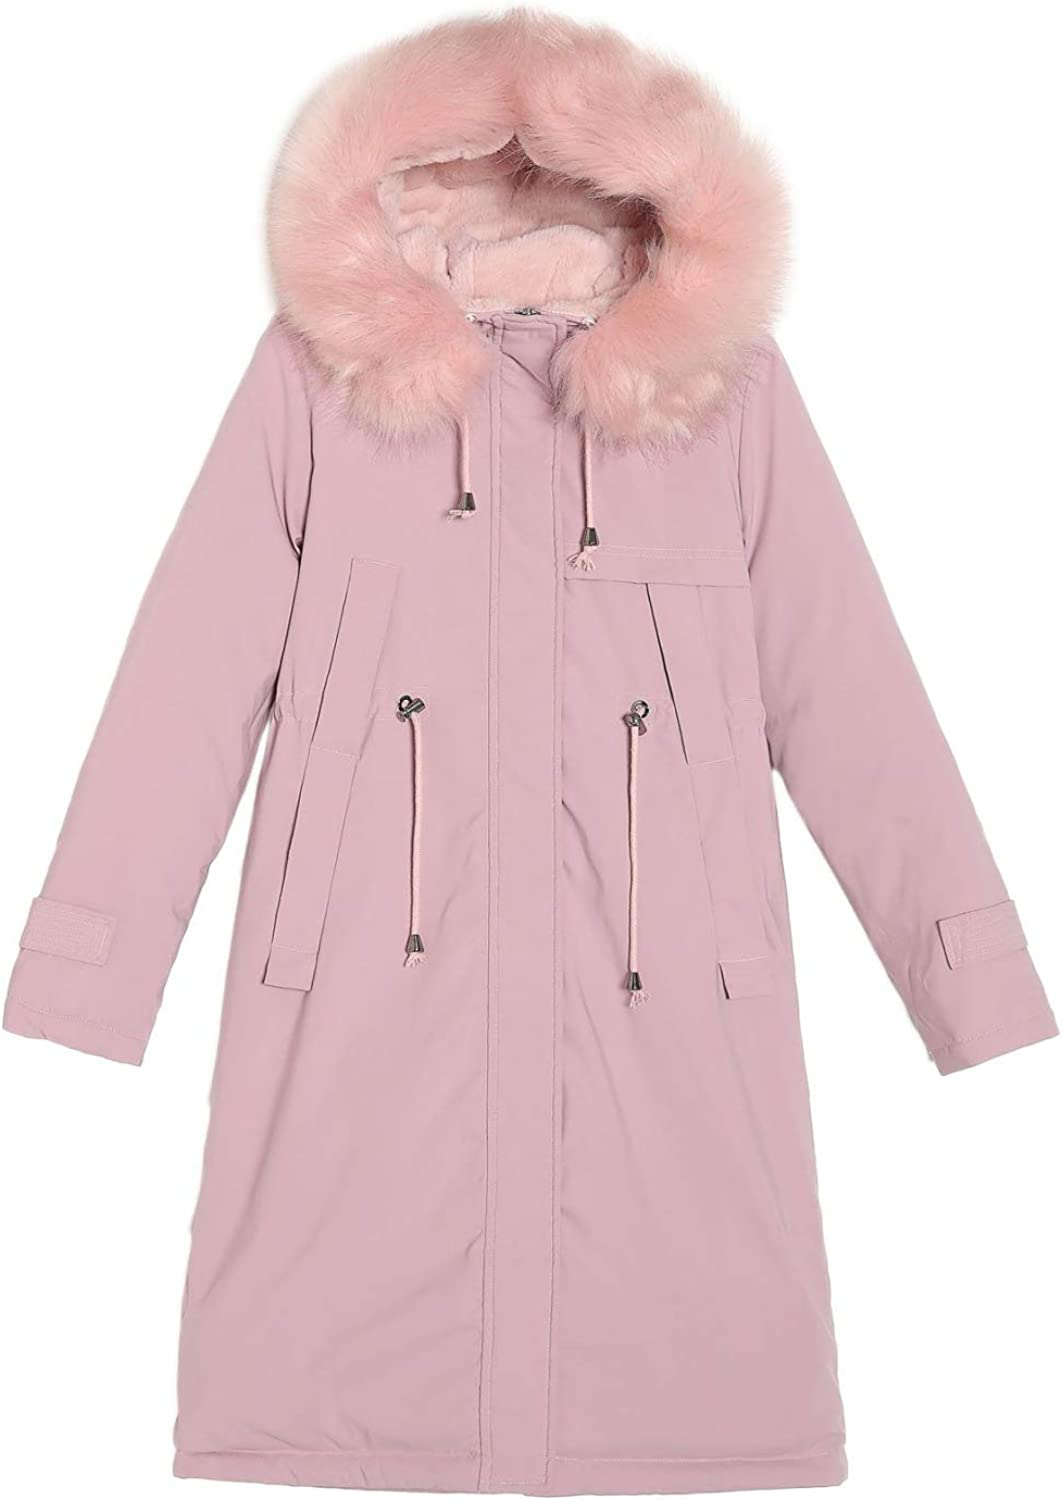 Women's Fleece Thickened Jacket , Winter Coat Quilted Puffer Jacket with Faux Fur Trim Hood